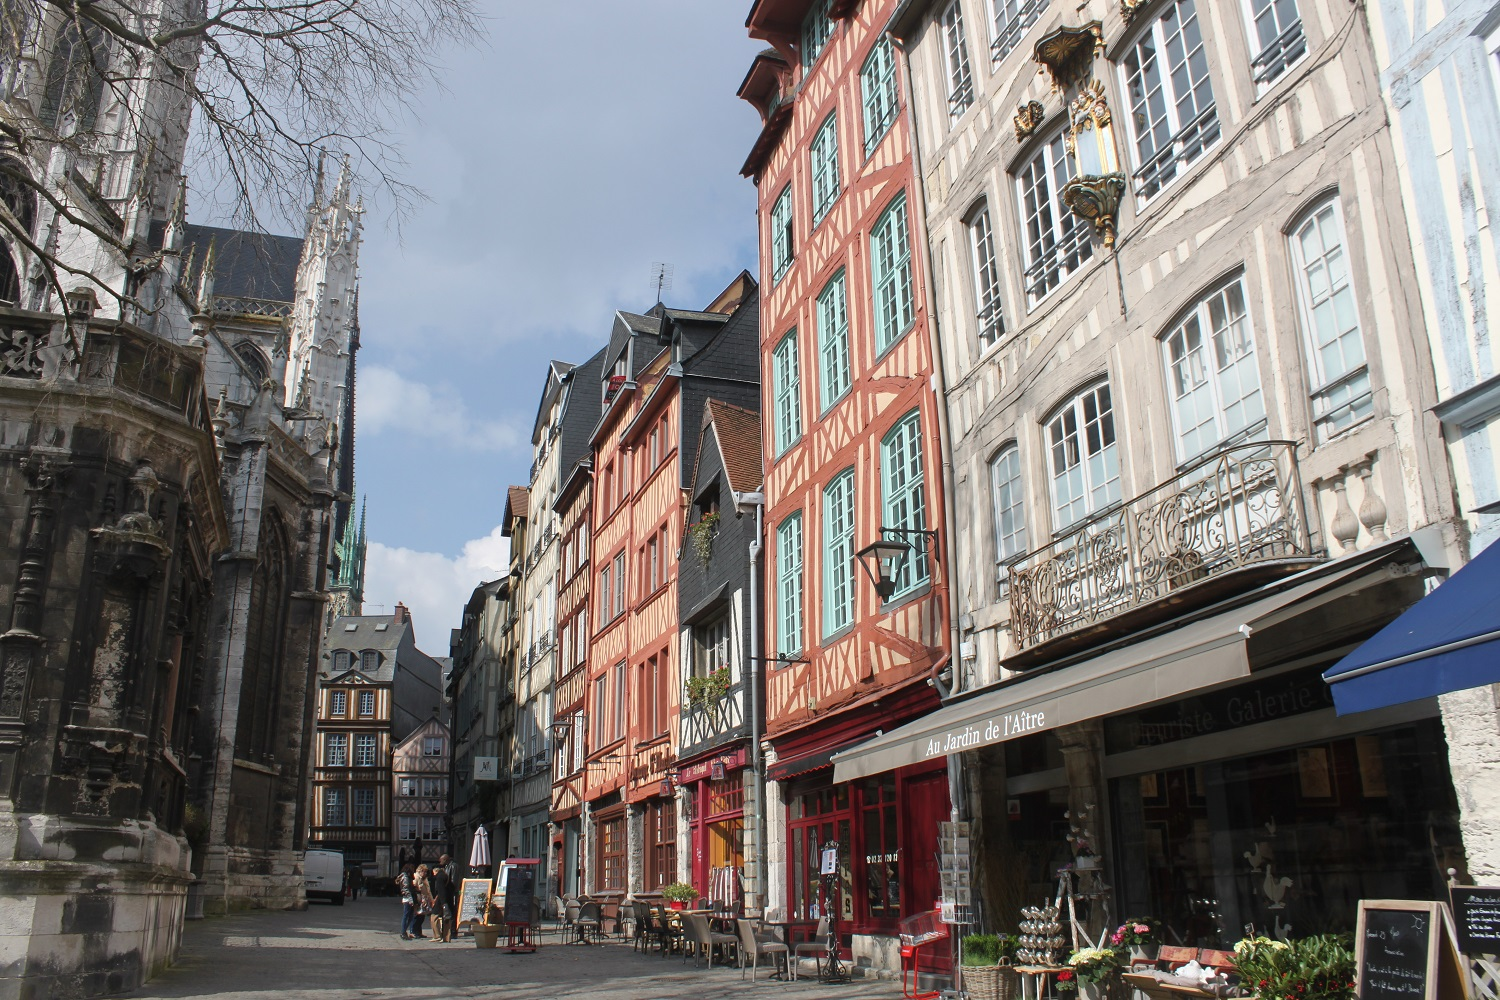 Highlight: Rouen